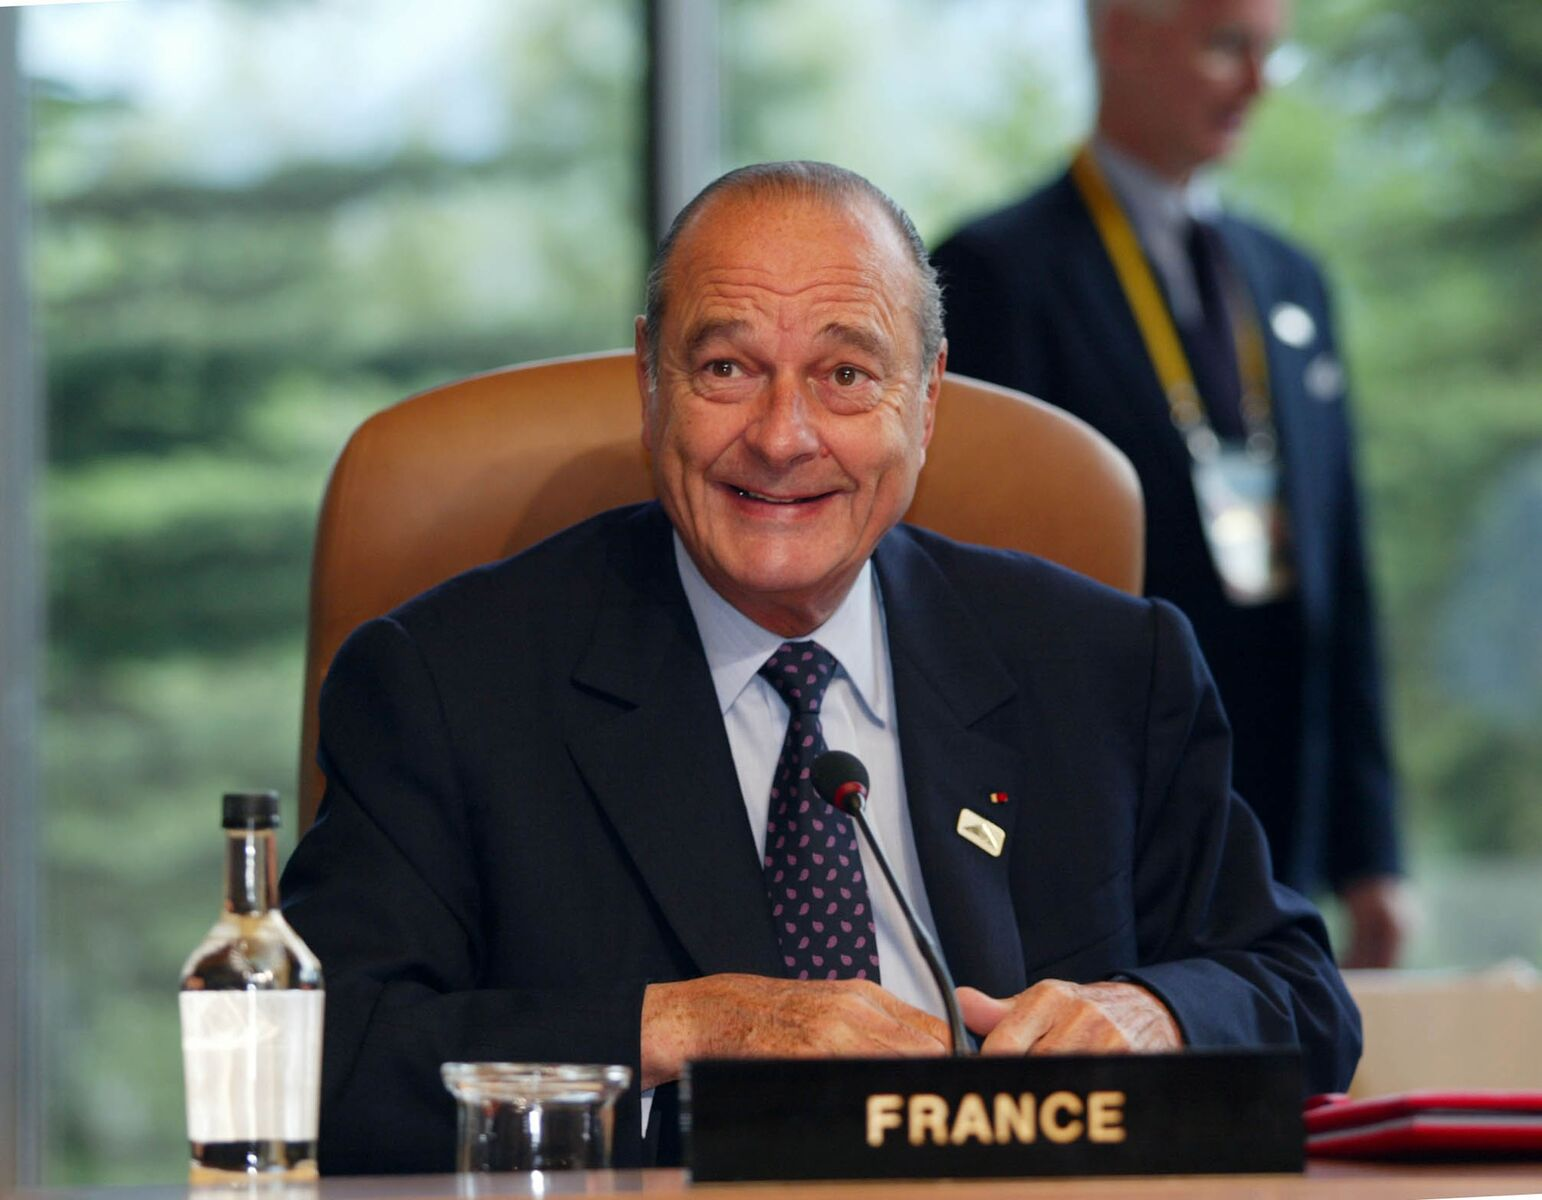 Jacques Chirac entrain de donner une conférence - Photo : Getty Images